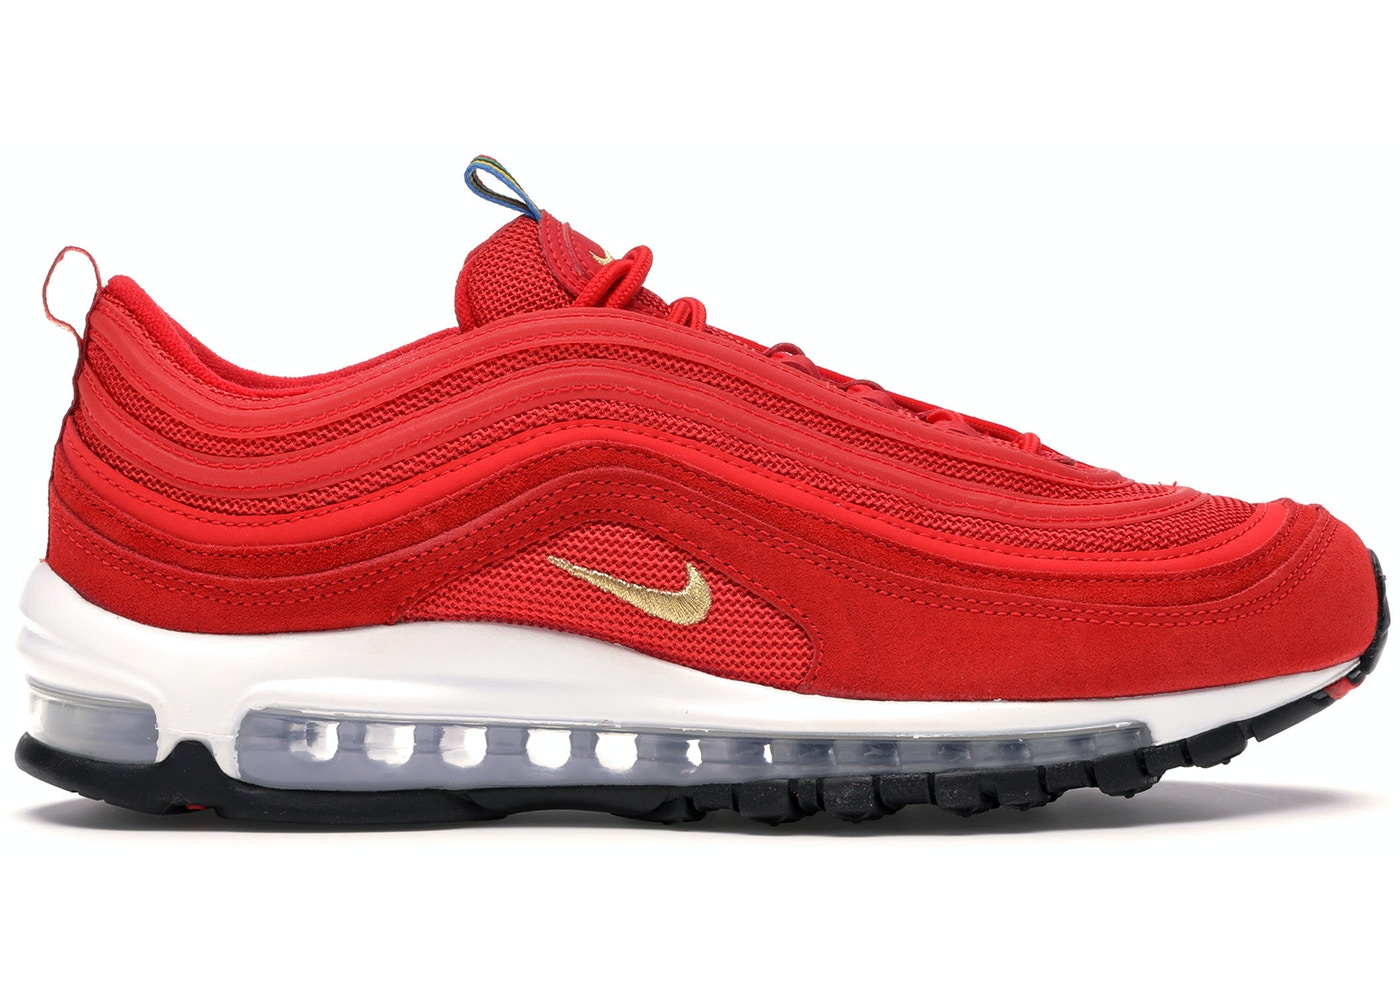 de madera Más que nada parilla  Nike Air Max 97 Olympic Rings Pack Red - CI3708-600